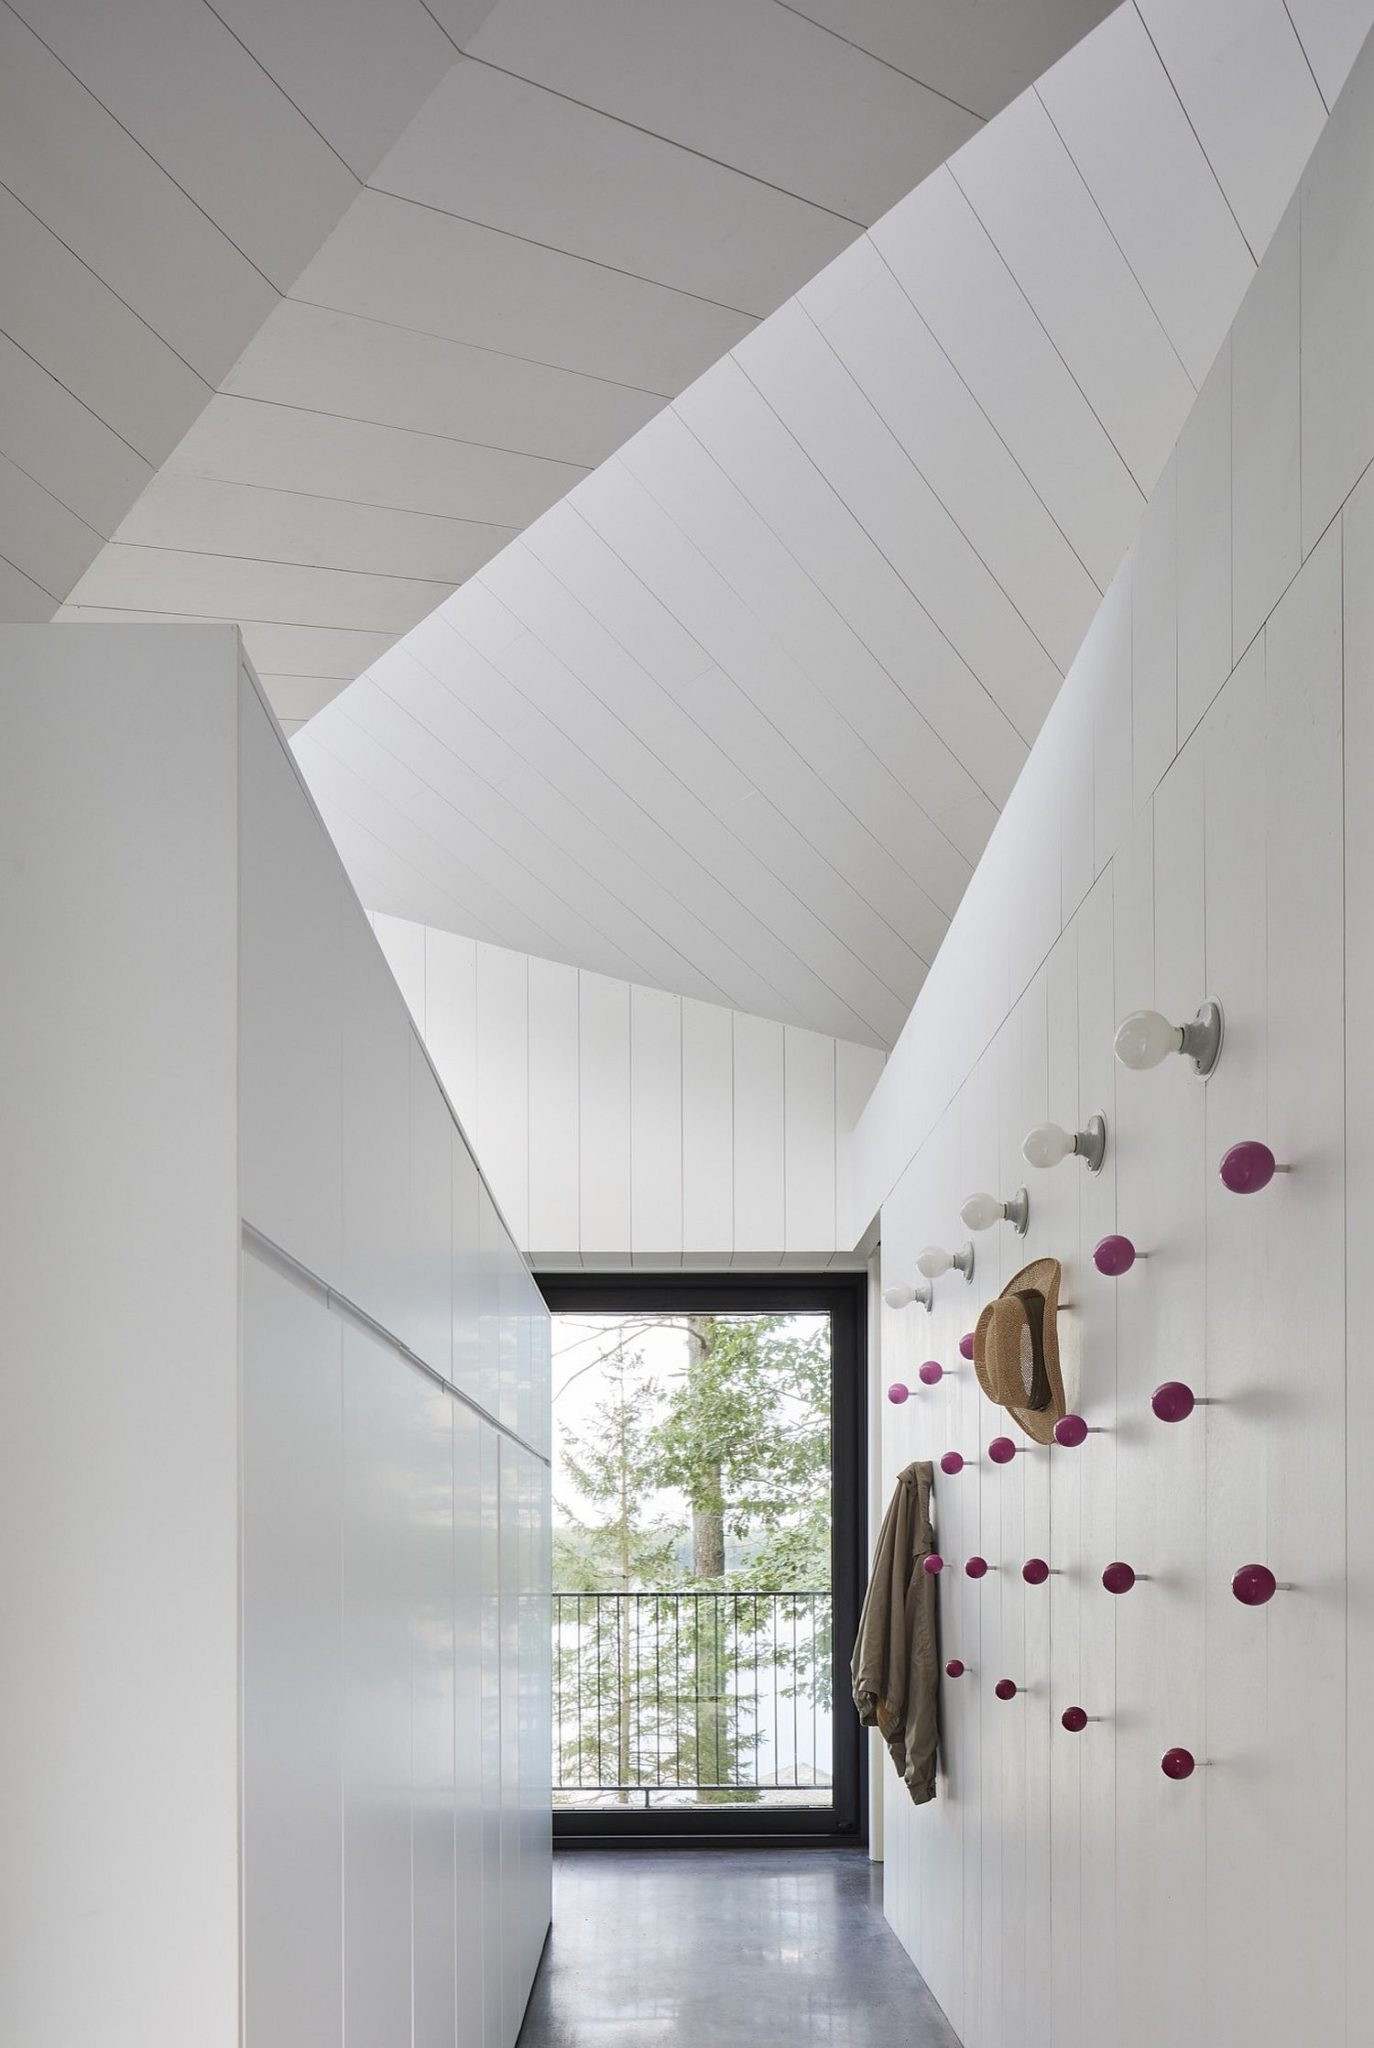 Simple-and-minimal-coat-hanger-system-in-the-hallway